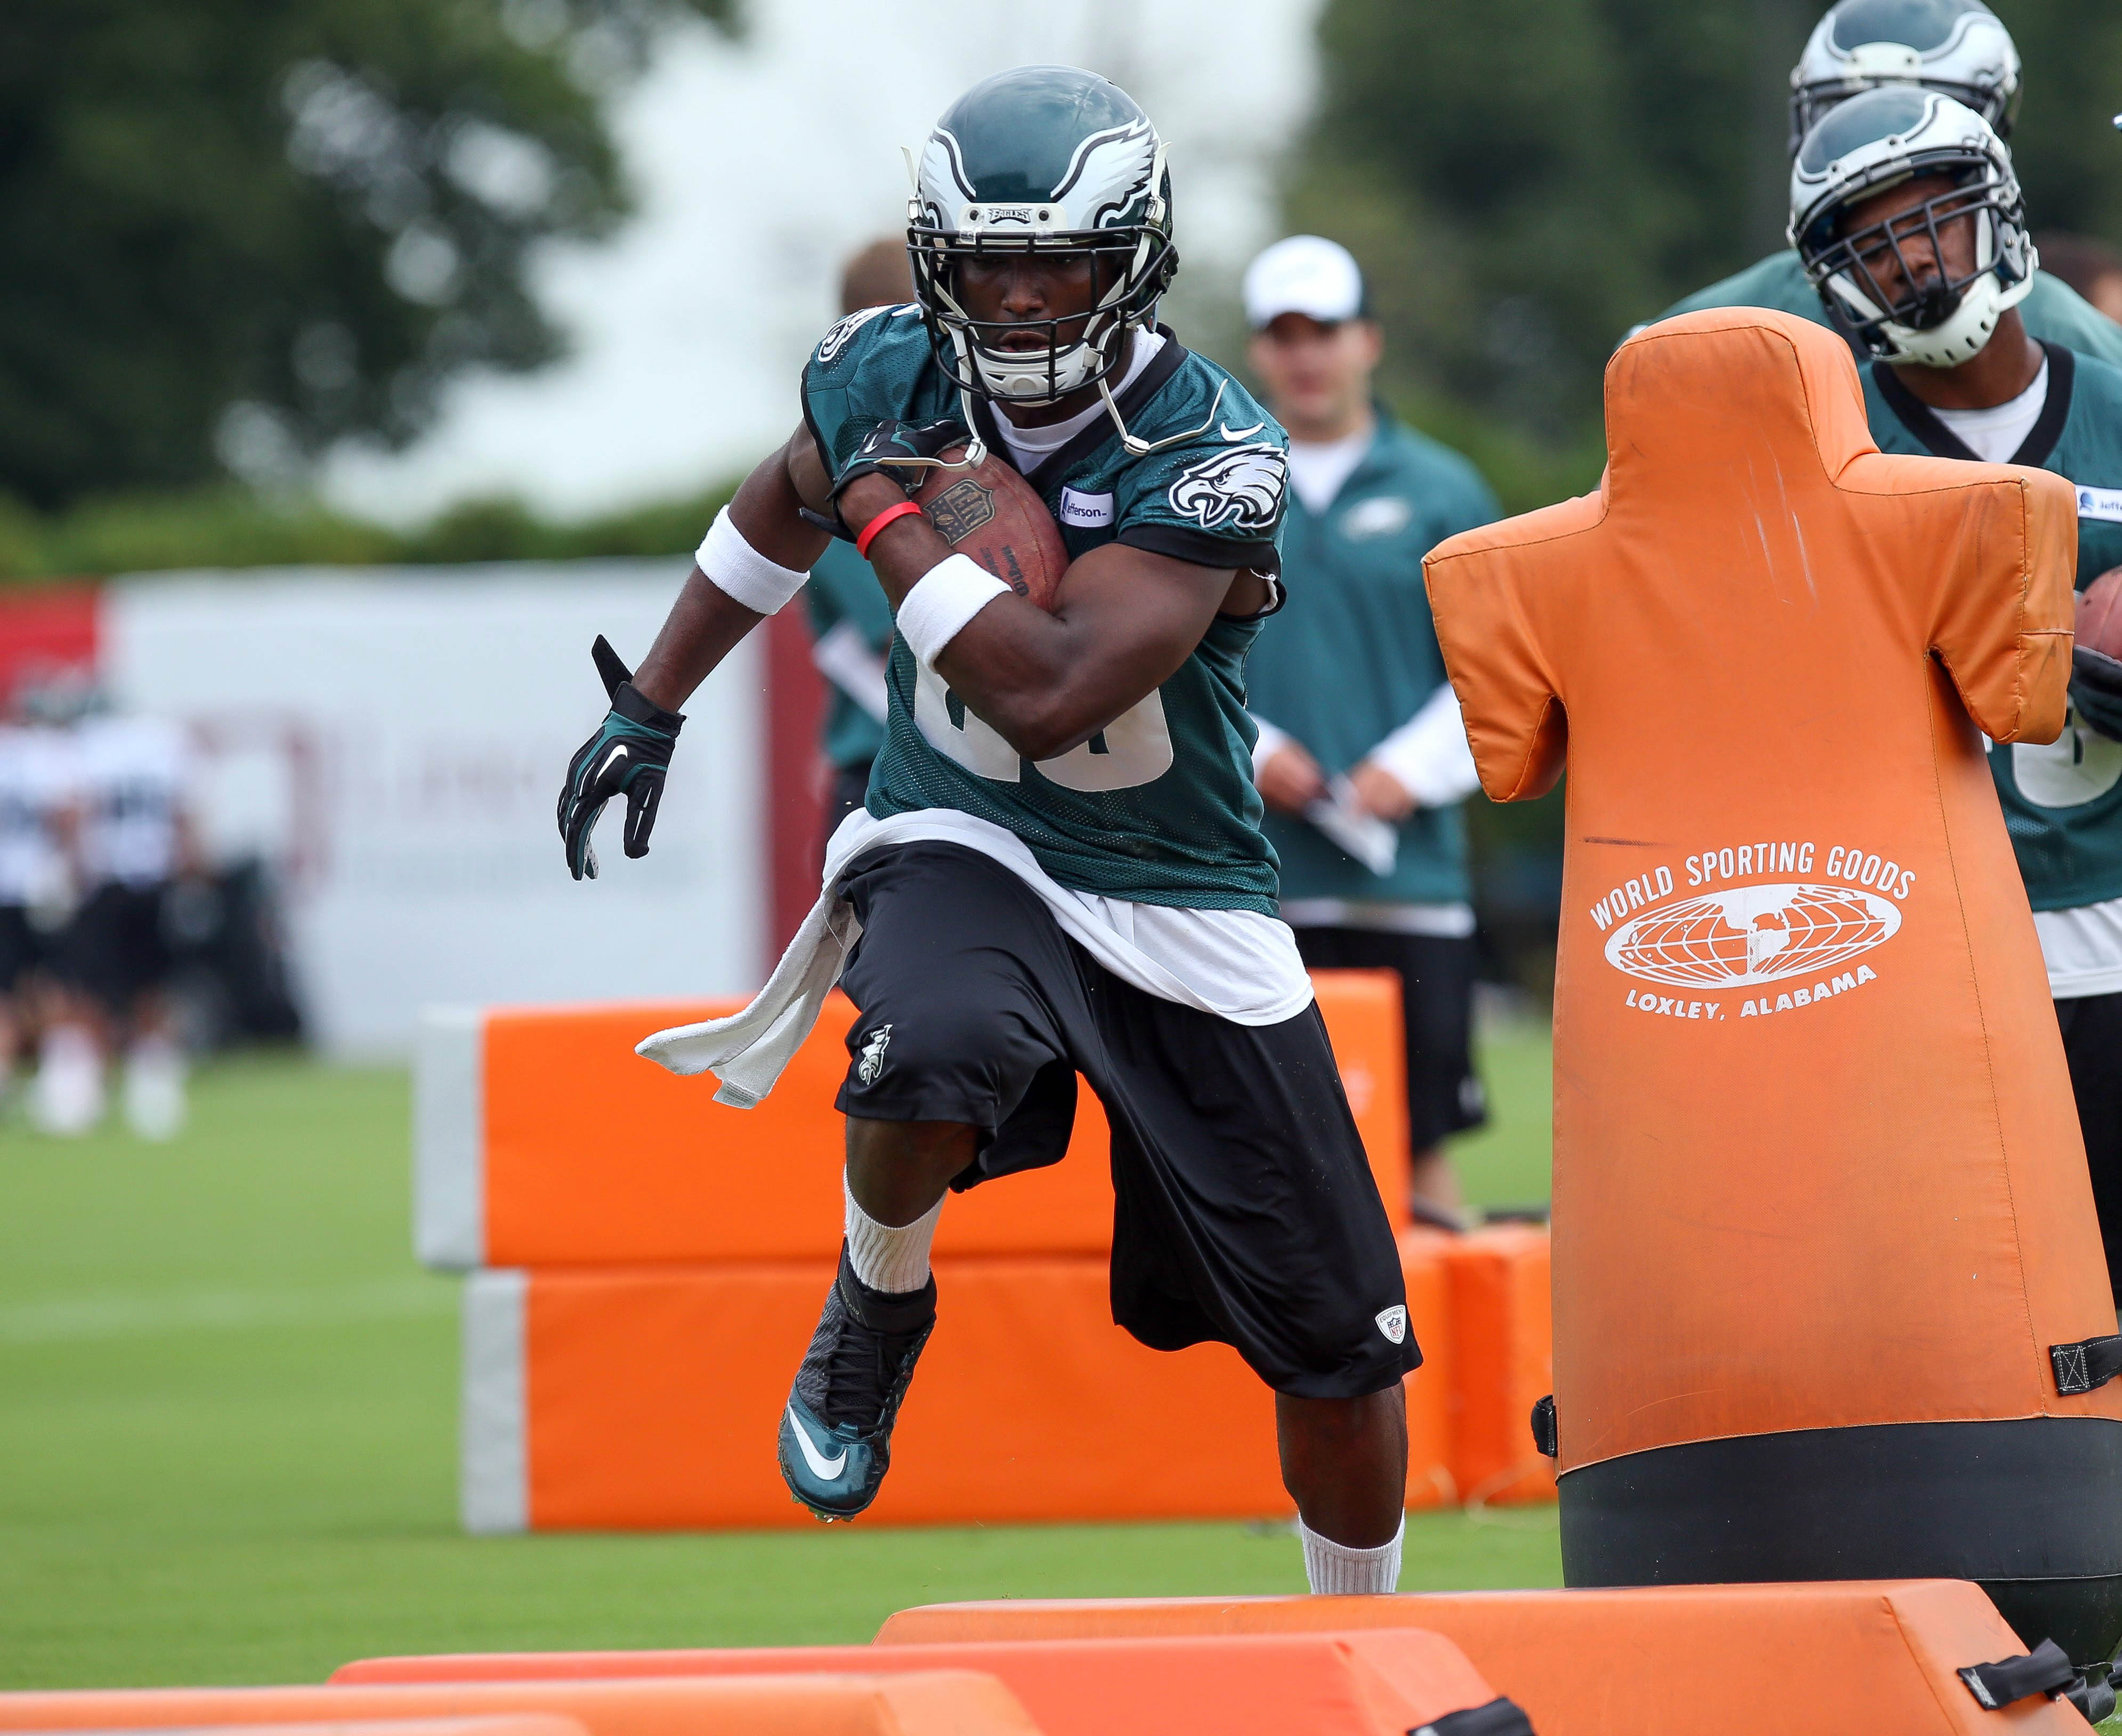 Inch by inch, Eagles gearing up for actual football season